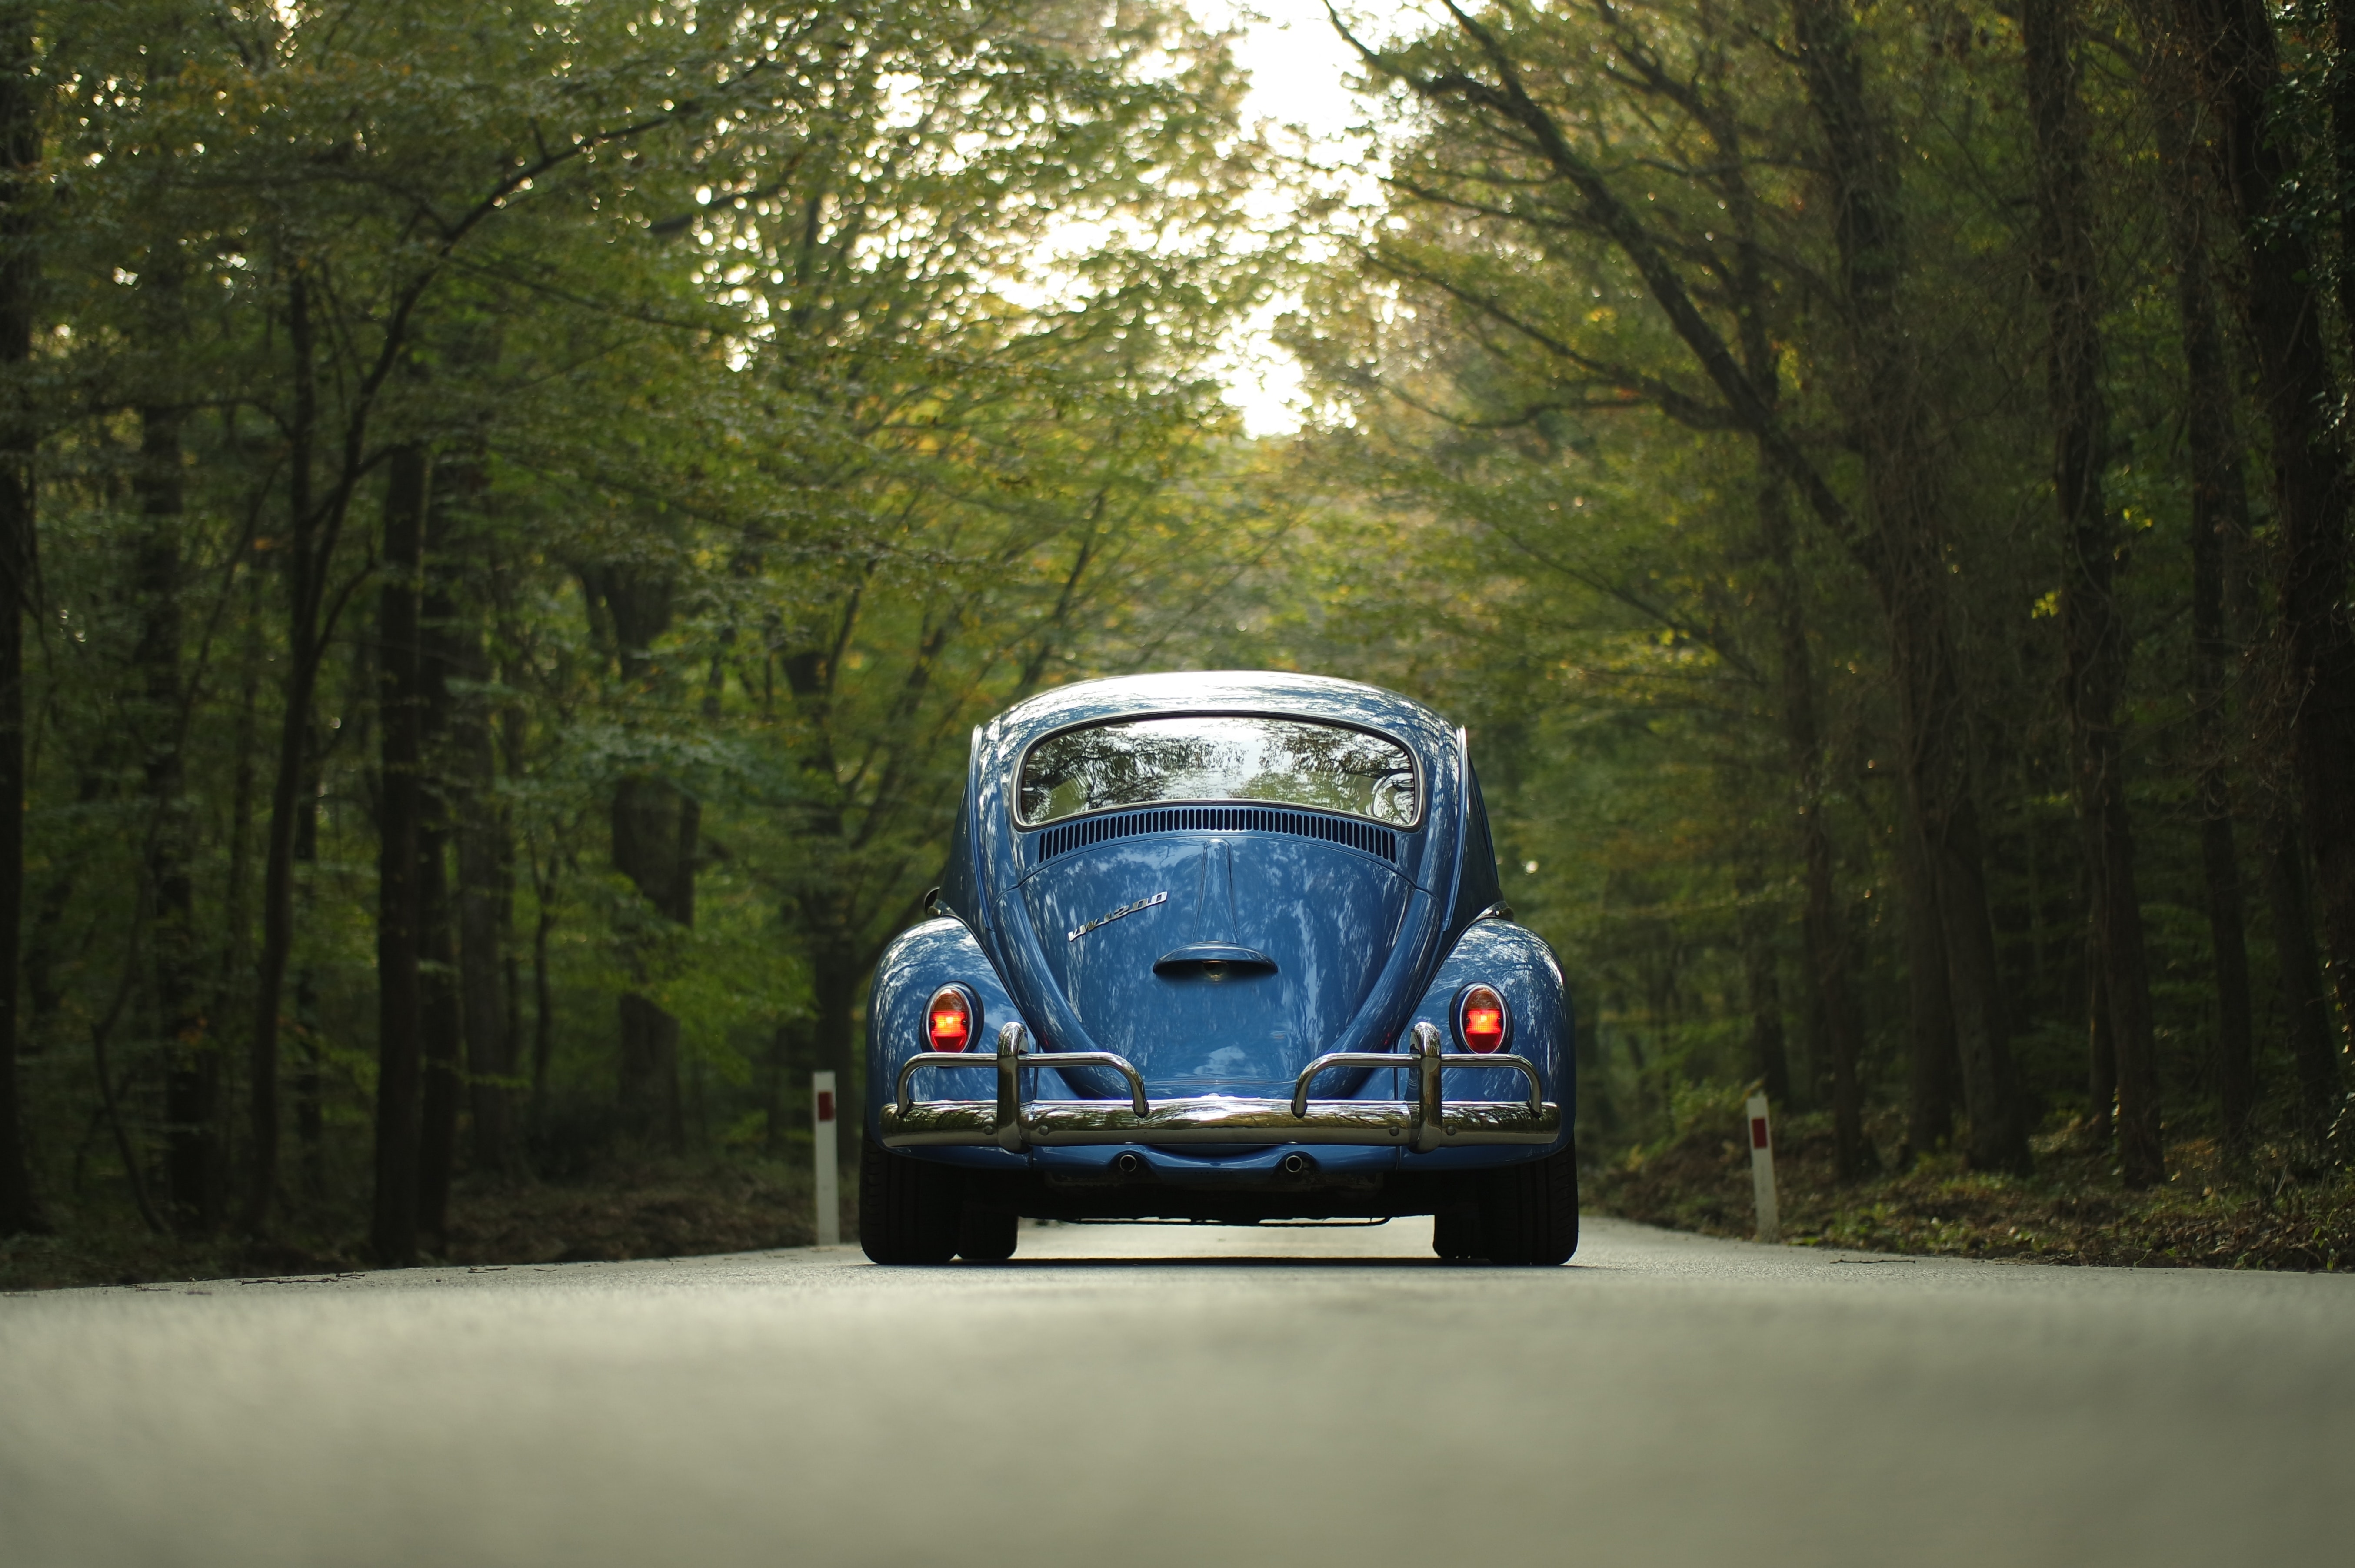 Blue Beetle Car on Gray Asphalt Road Between Green Leaf Trees, Car, Classic car, Forest, Outdoors, HQ Photo